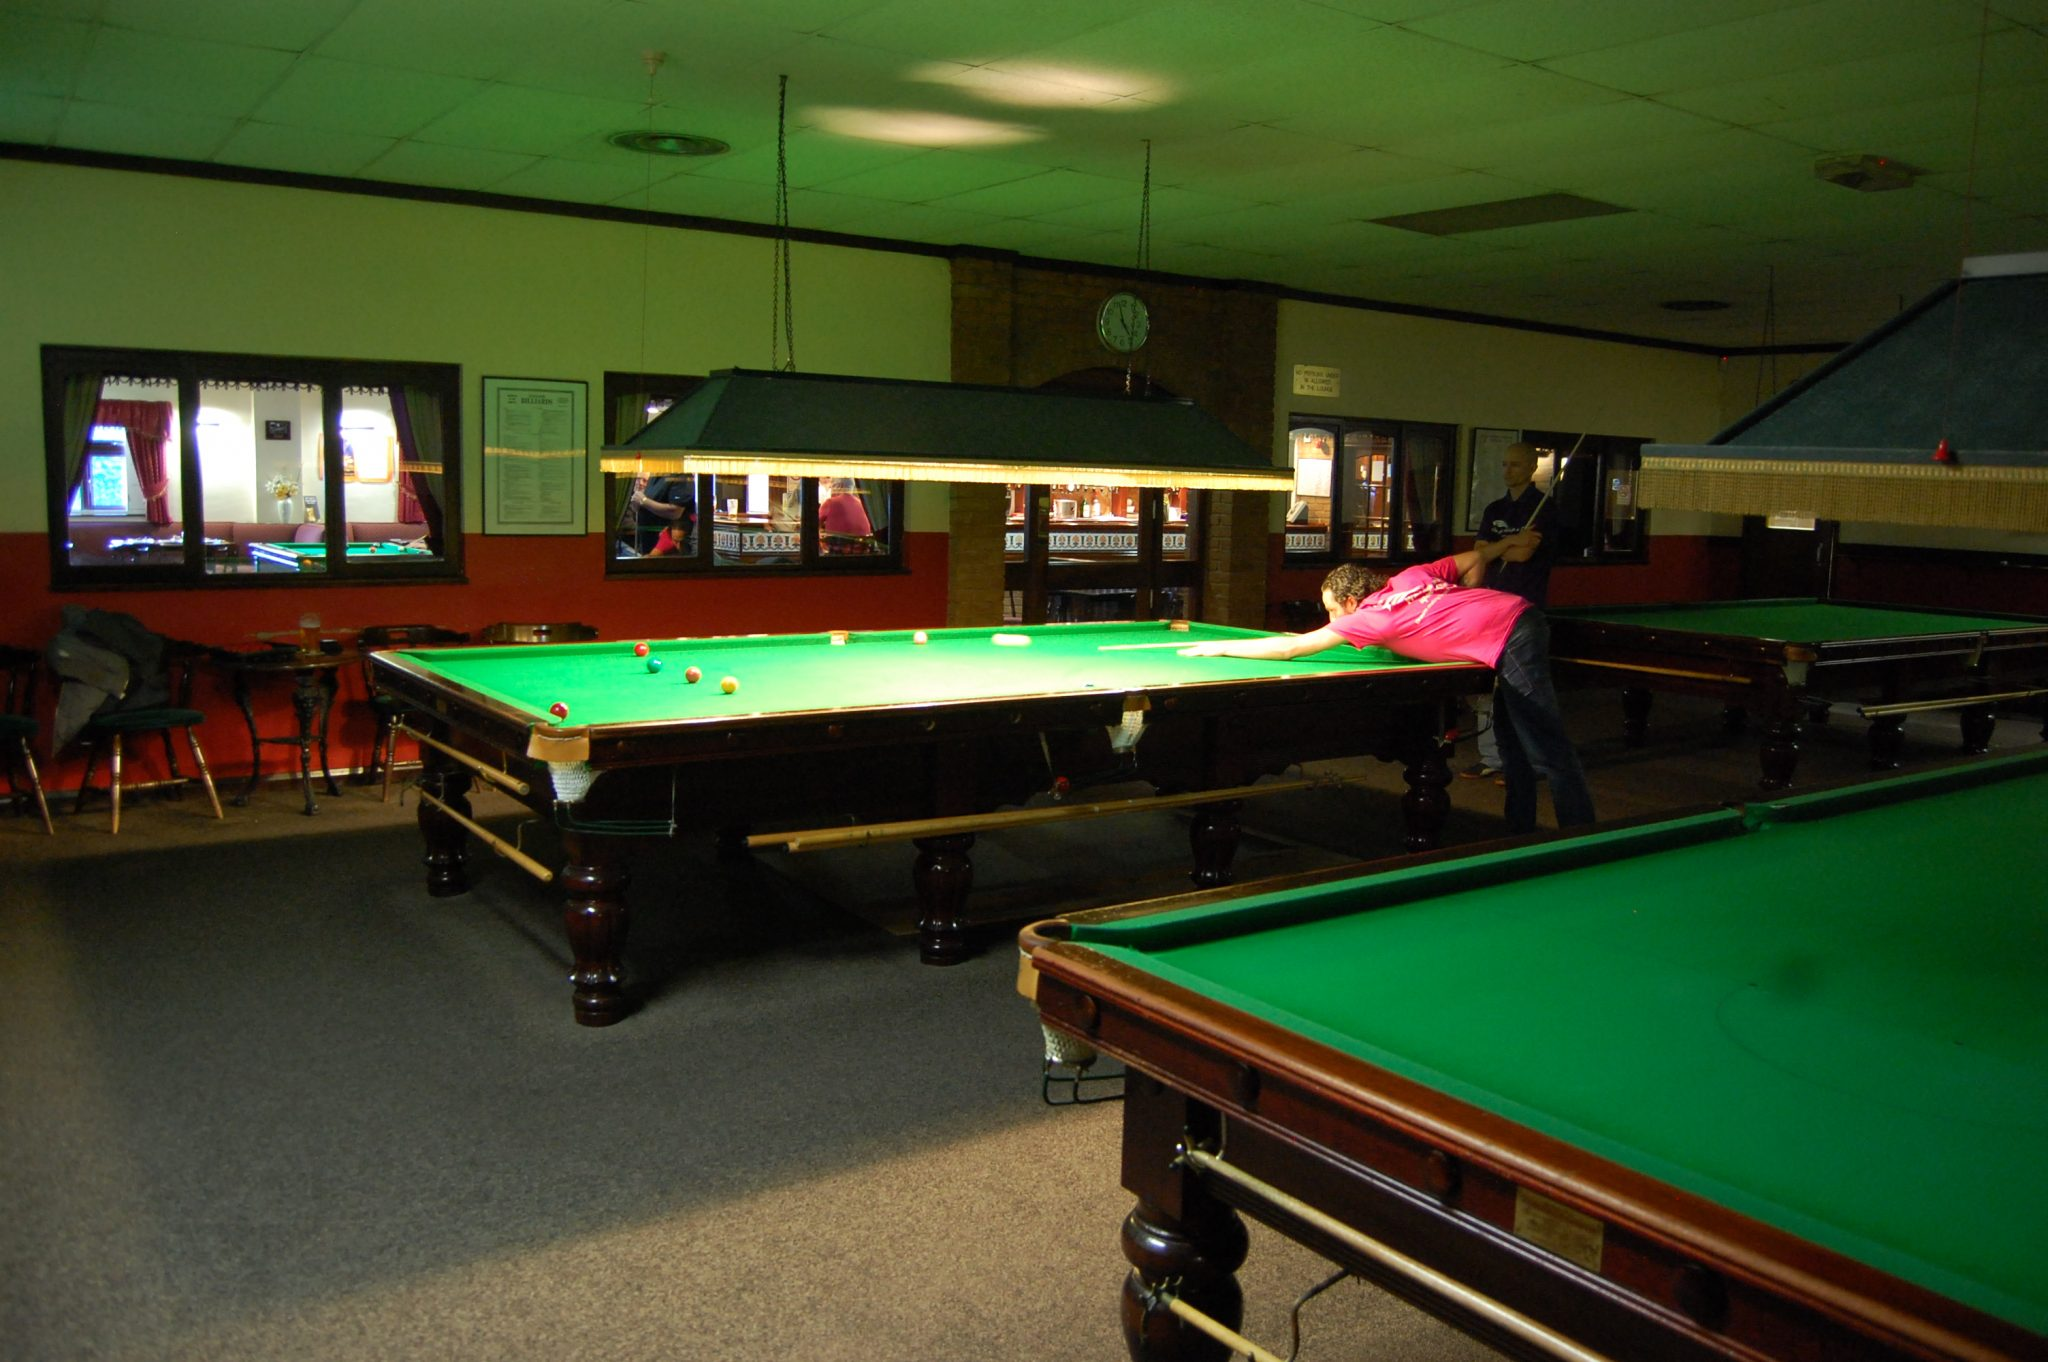 An easy win for Steve at Triple S Snooker Club